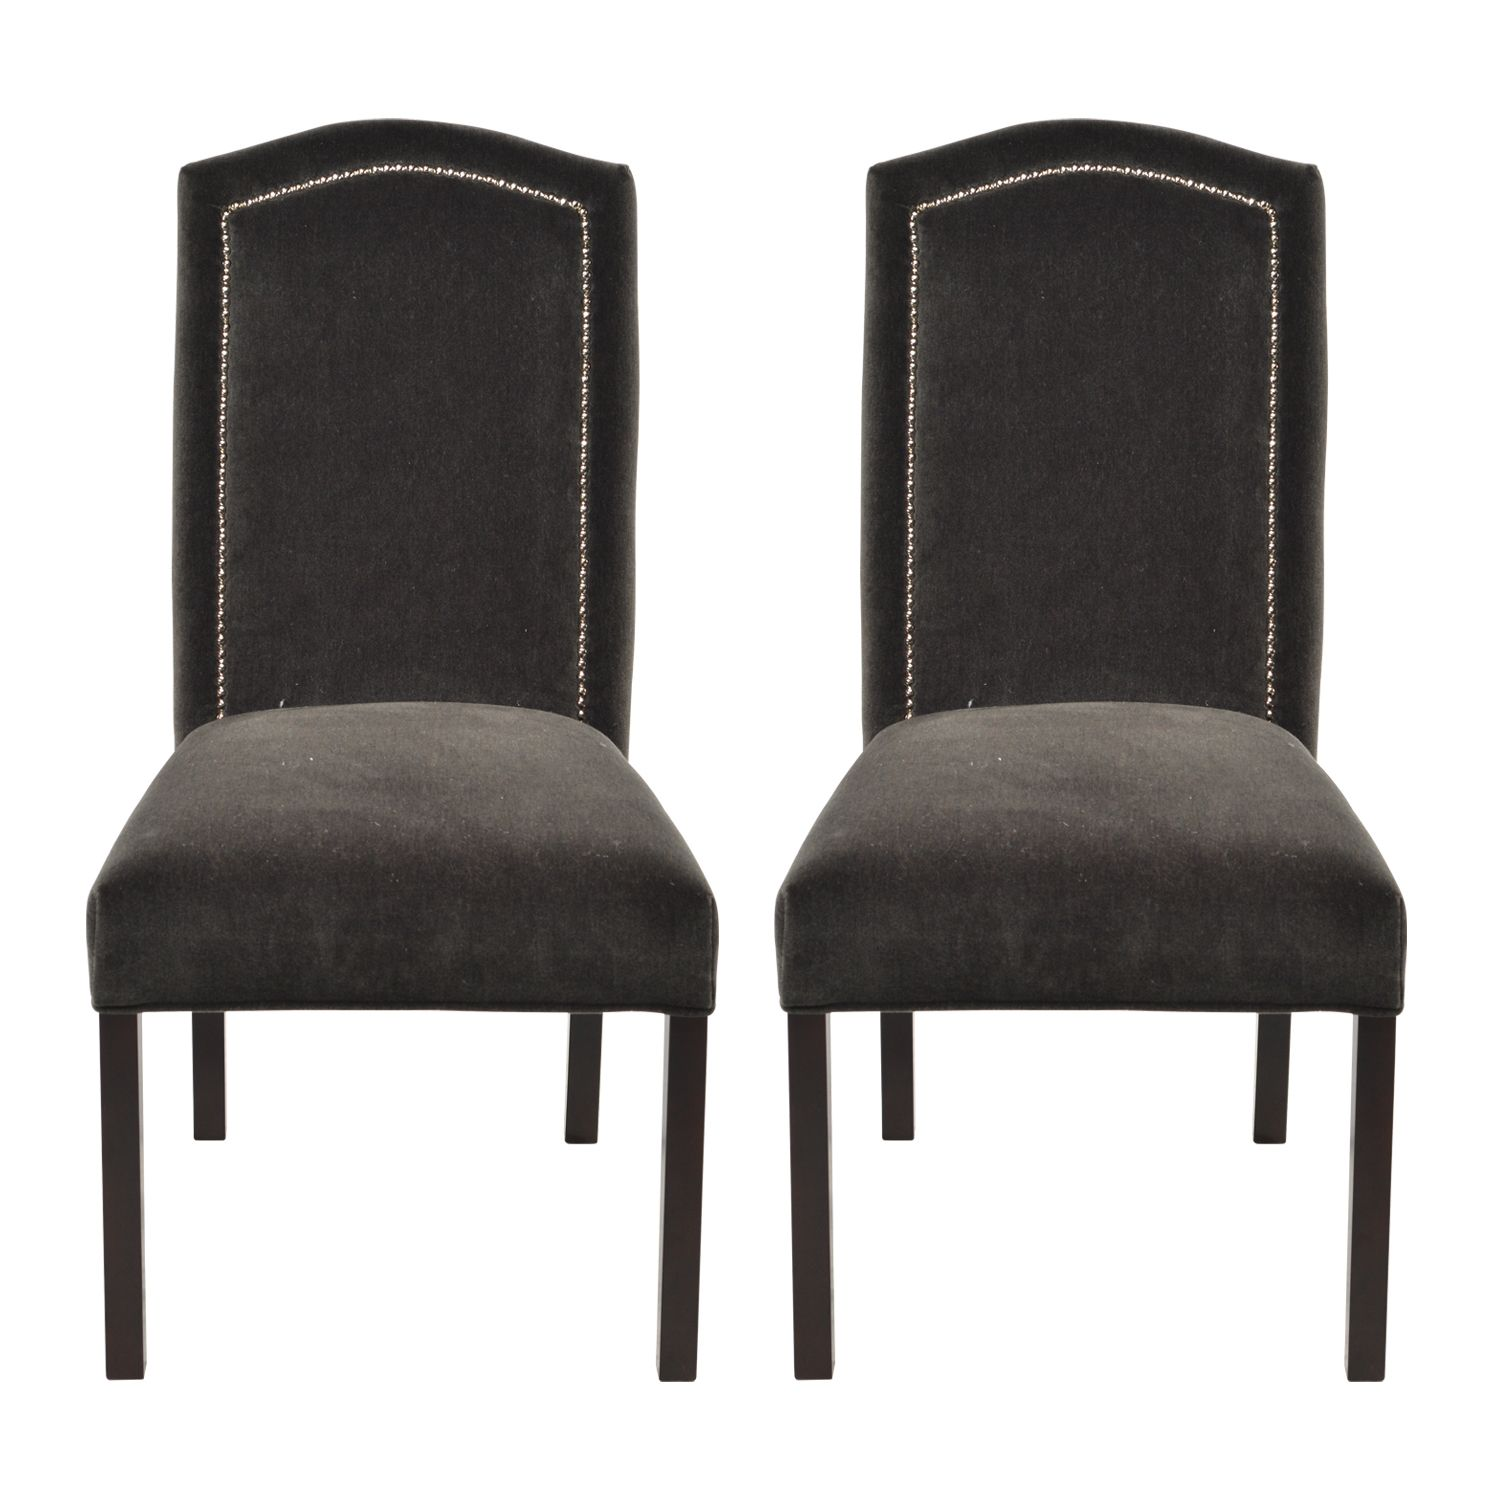 Add Definition And Chic Style To The Dining Room With These Upholstered Nail Backed